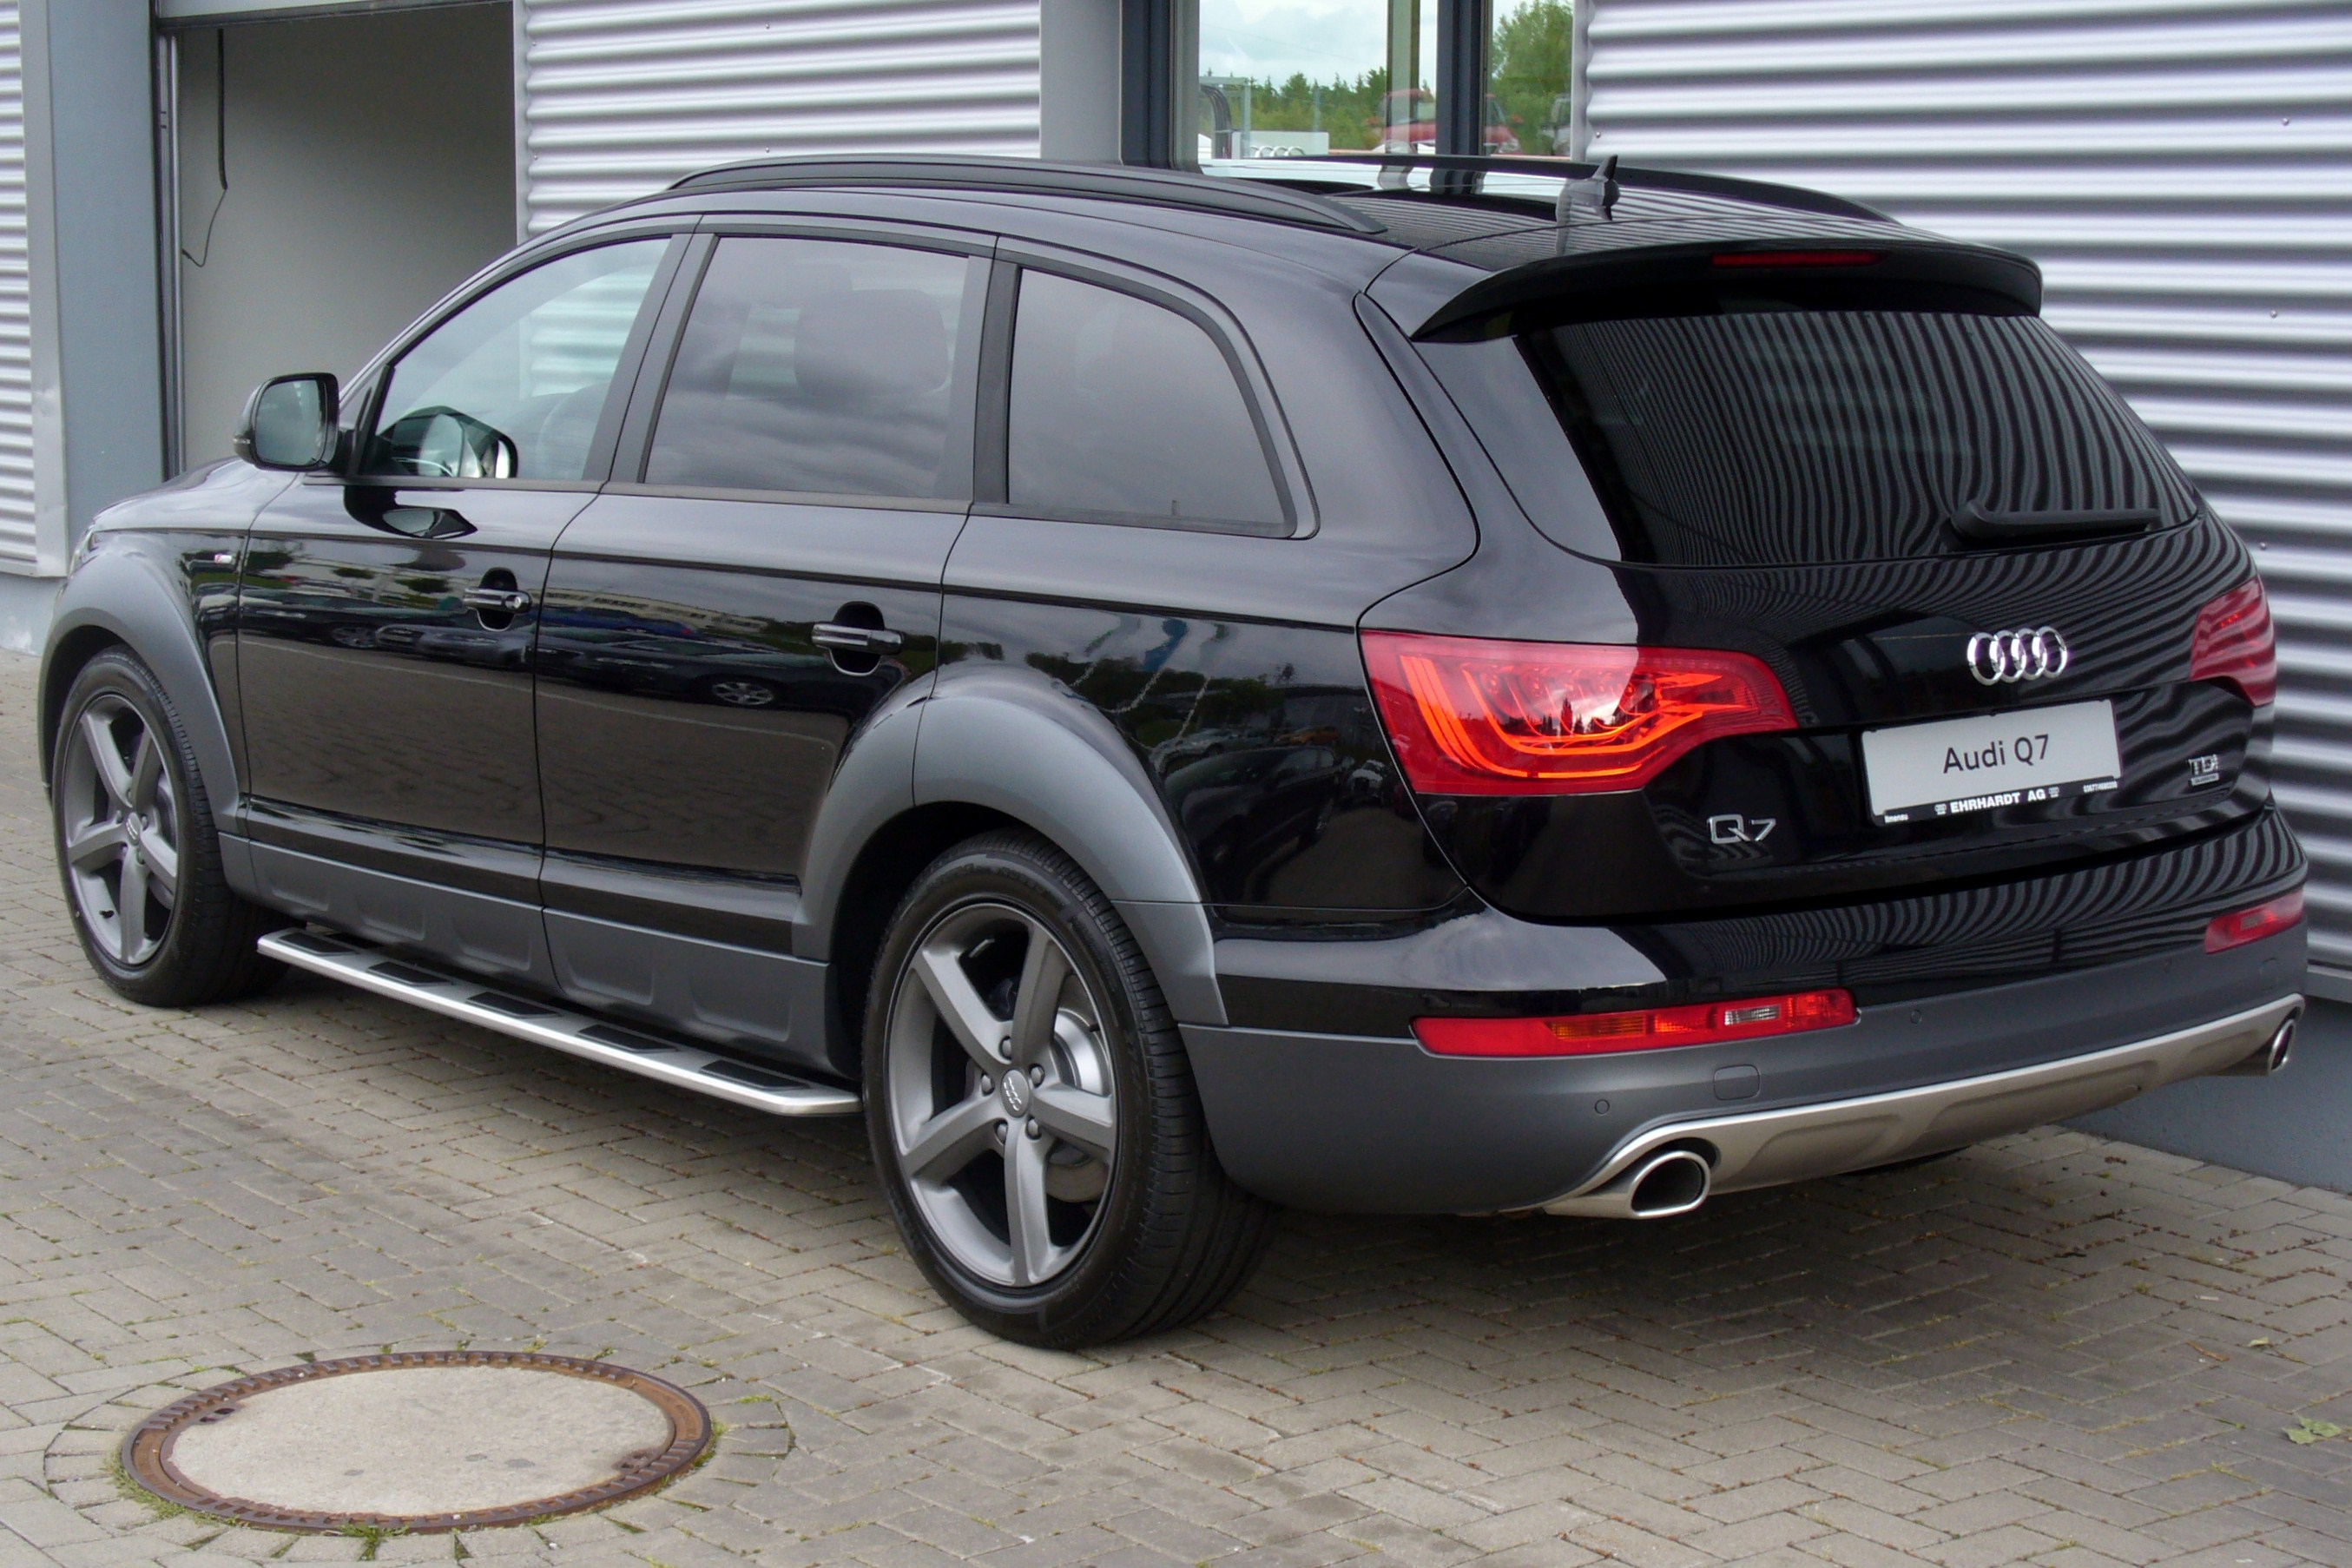 file audi q7 offroad style s line 3 0 tdi quattro tiptronic phantomschwarz heck jpg wikimedia. Black Bedroom Furniture Sets. Home Design Ideas